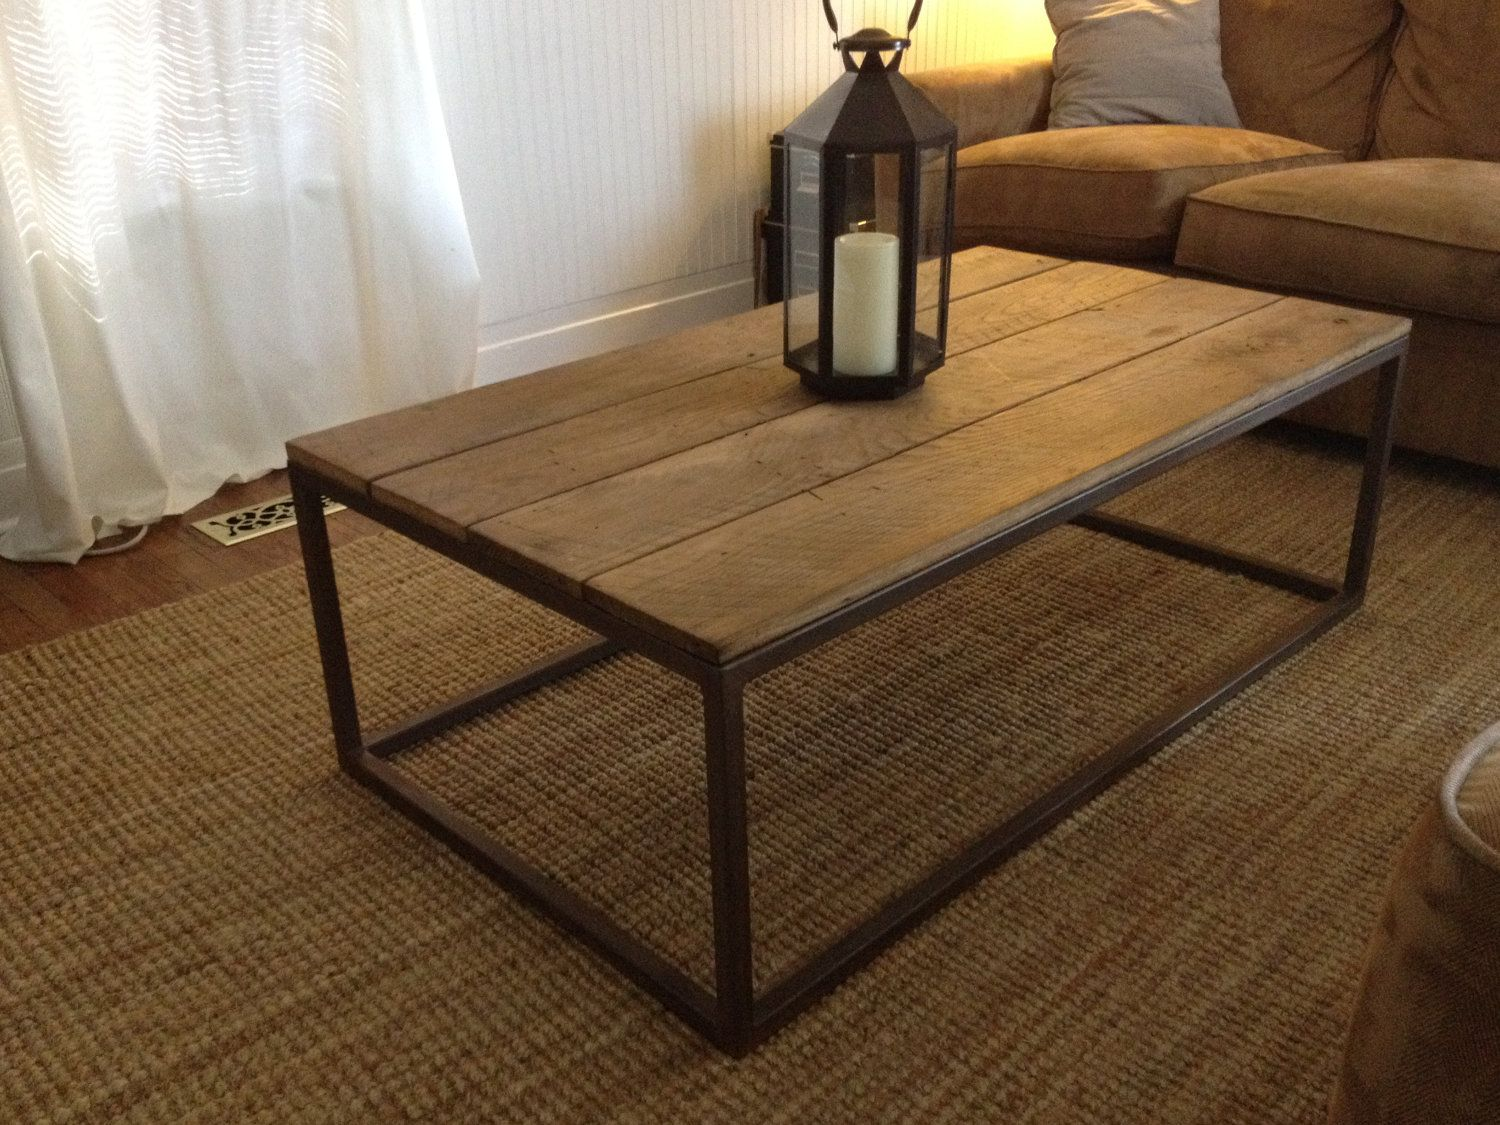 Pin by jen garner on decor pinterest industrial style coffee love this metal welded coffee table with wood top that im seeing everywhere geotapseo Image collections